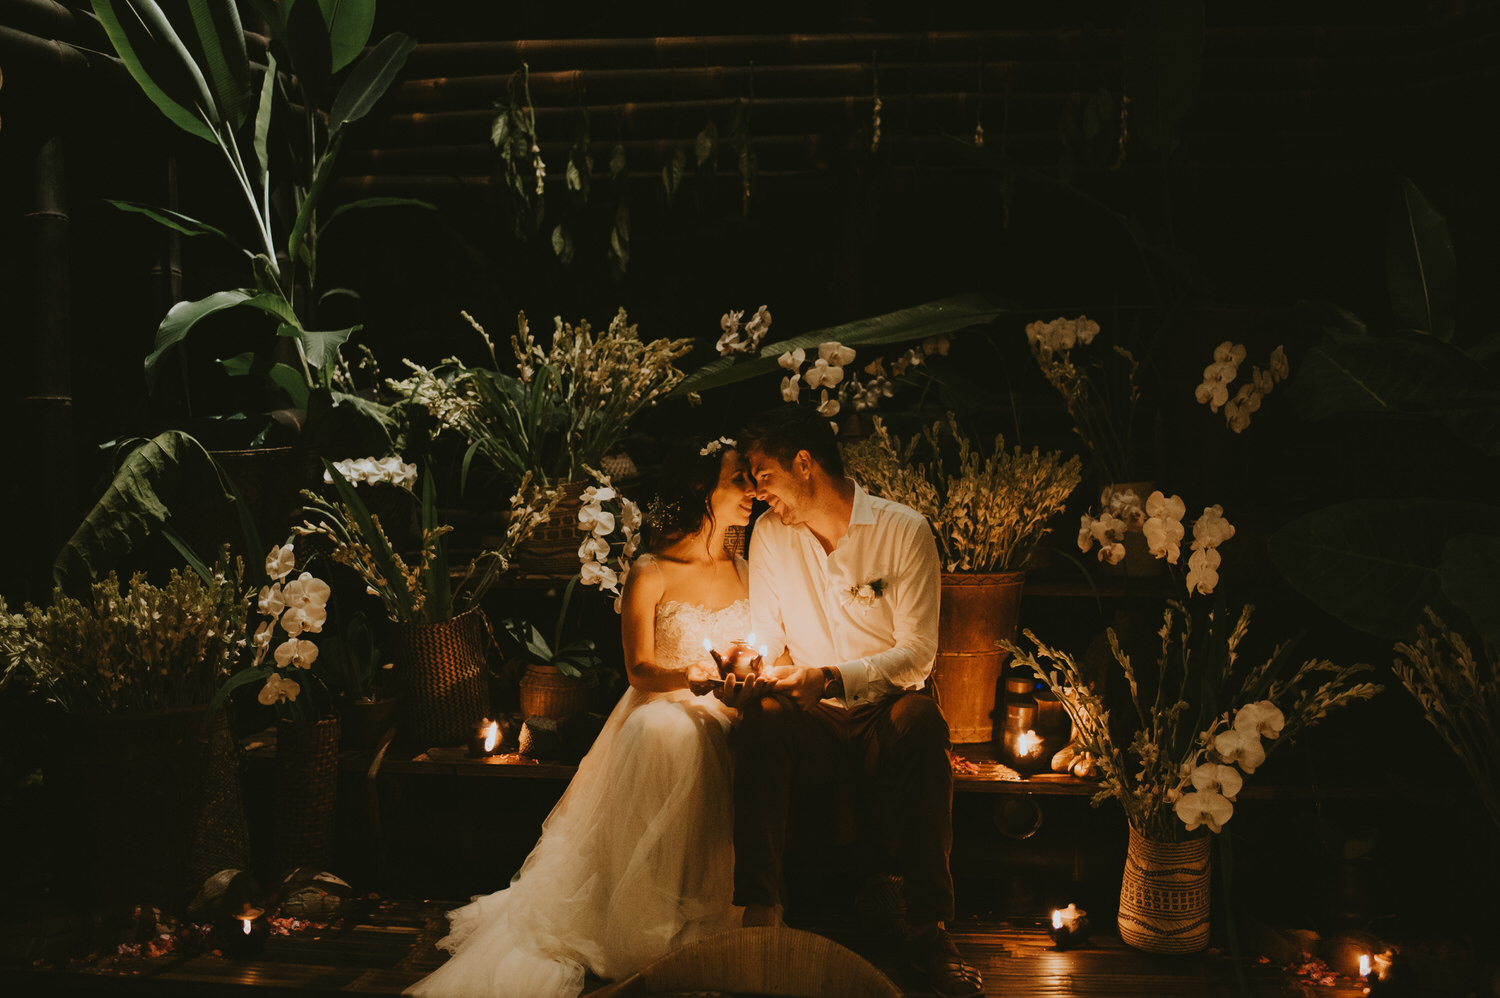 bali-wedding-ubud-wedding-wedding-destination-diktatphotography-kadek-artayasa-elaine-and-glenn-118